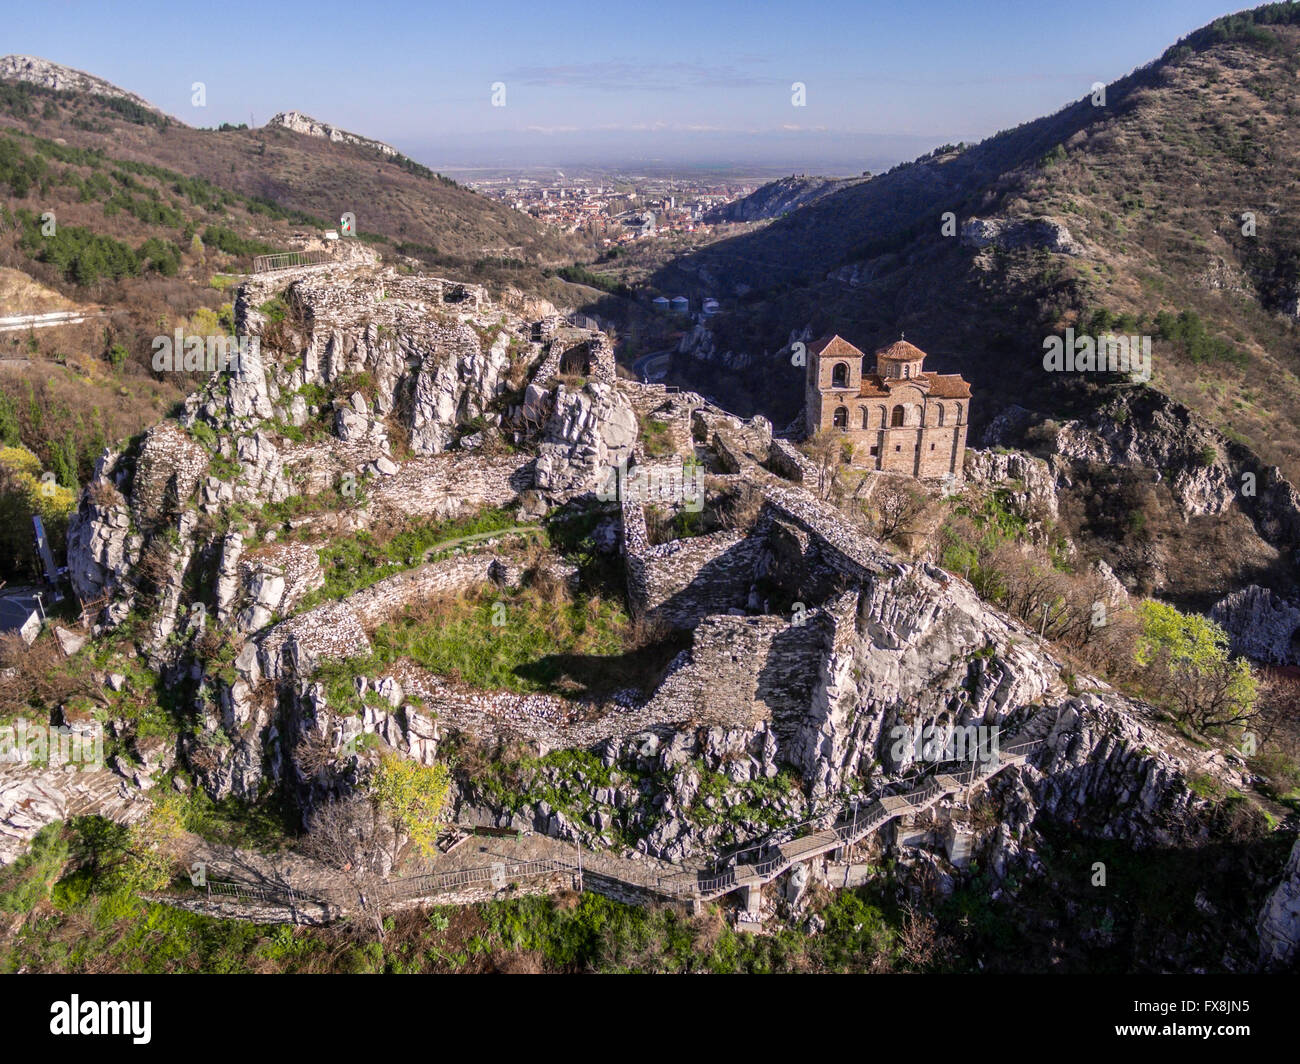 Areal veiw of the Asen's fortress and the Virgin Mary church with Asenovgrad city in the background. Stock Photo